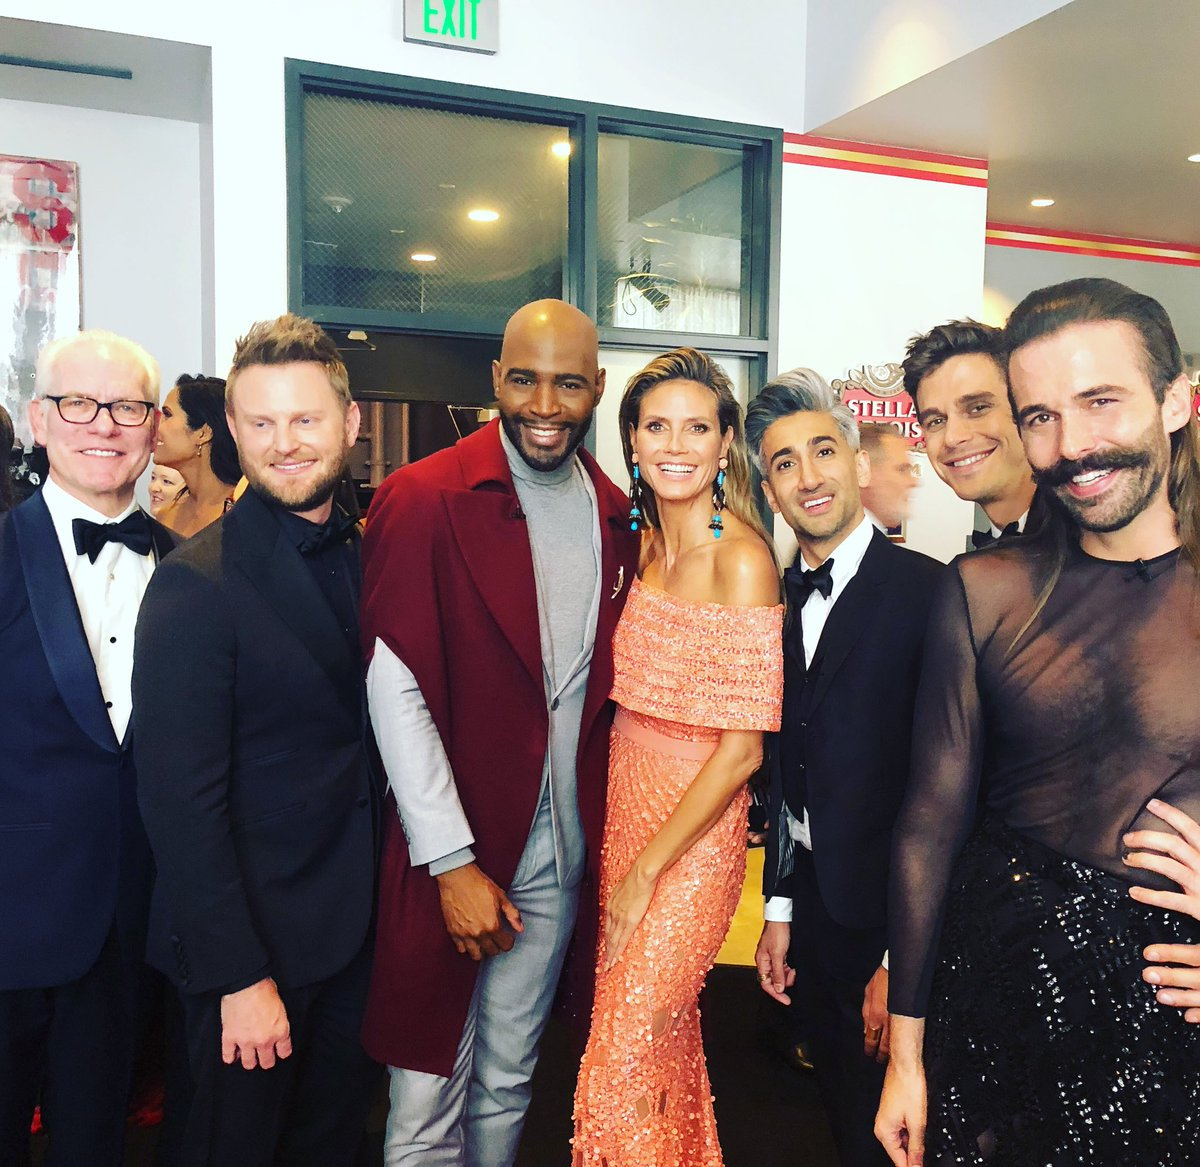 What an absolute thrill to run into the gang from @queereye ???? #CreativeEmmys https://t.co/yZ5S6j9uxn